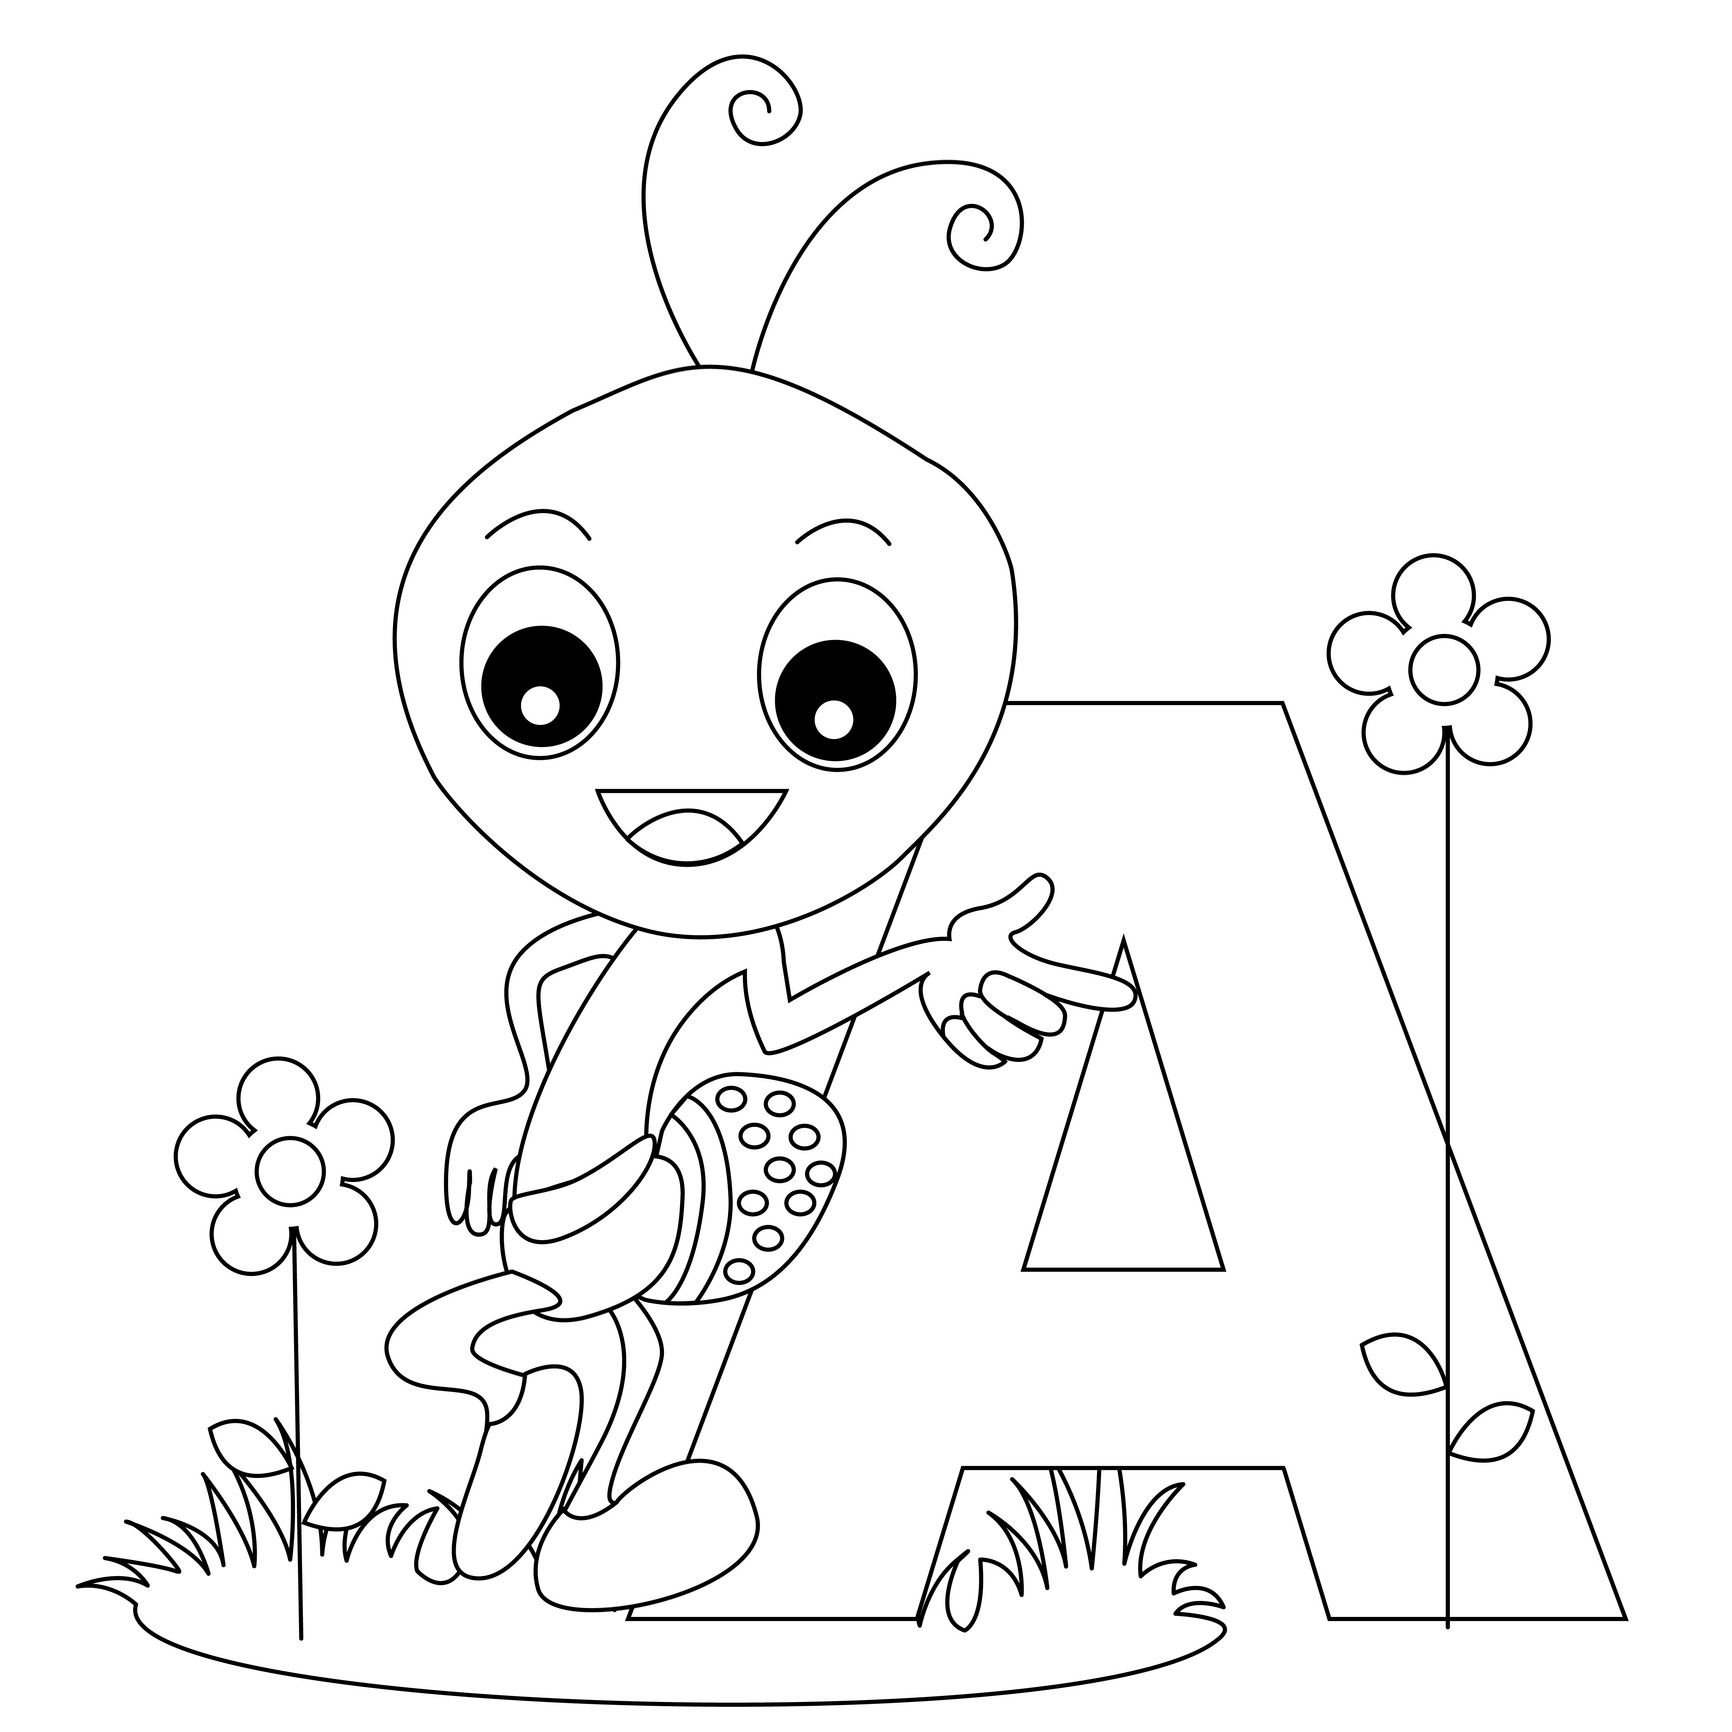 Abc Blocks Coloring Pages At Getdrawings Com Free For Personal Use